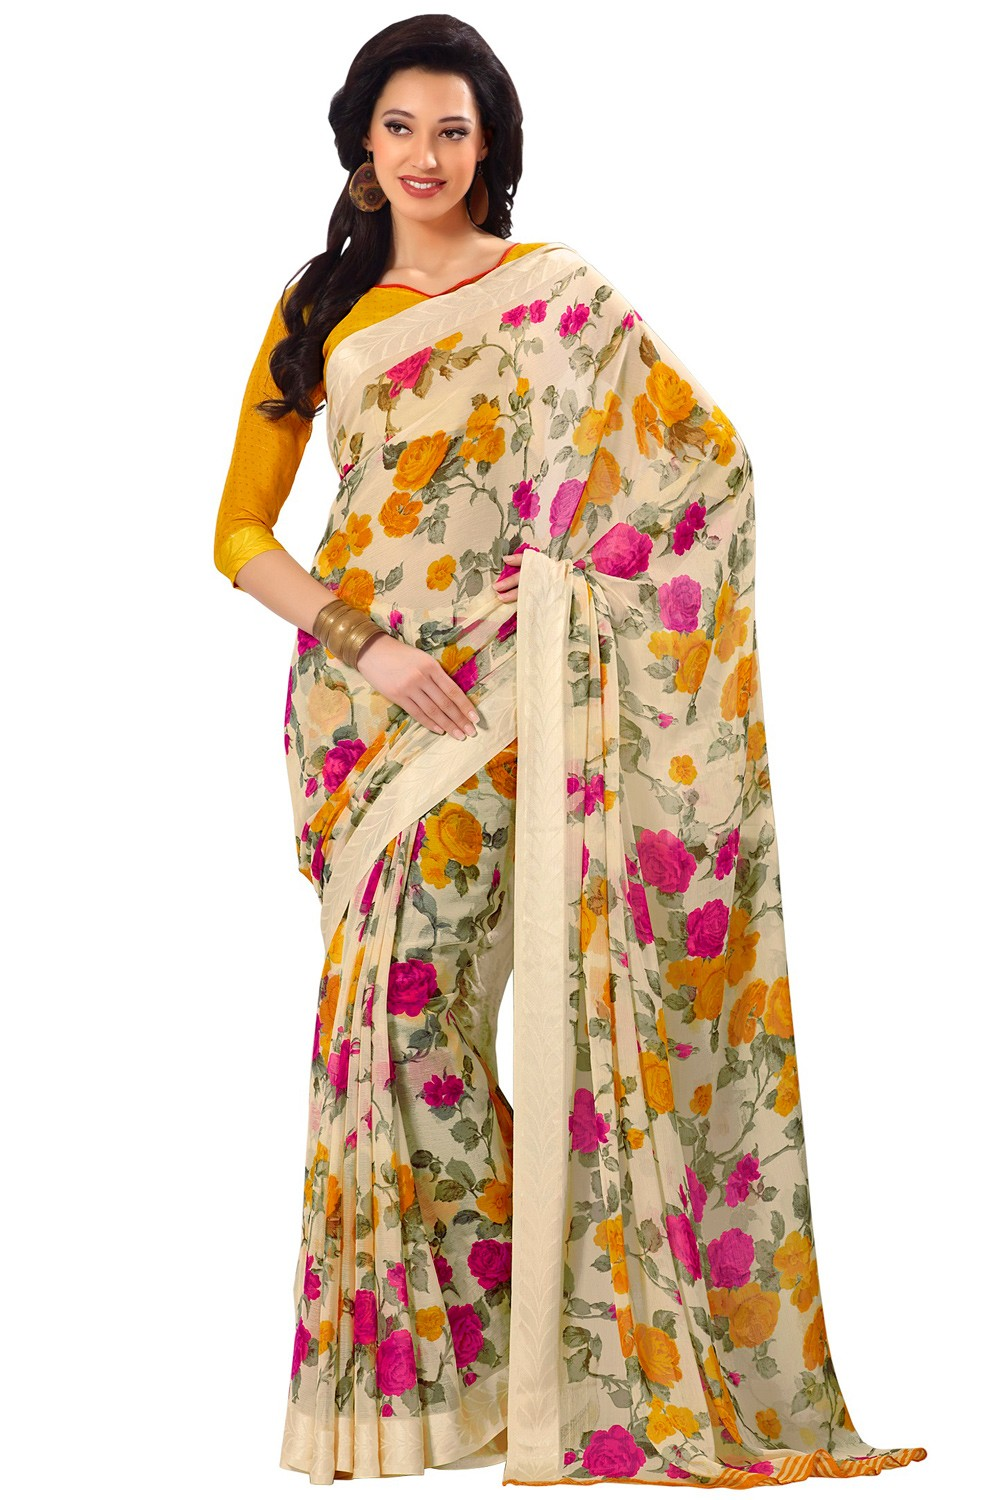 Paaneri Tan Color Flowerest Georgette Saree With Satin Border Pallu-Product Code-16120406906